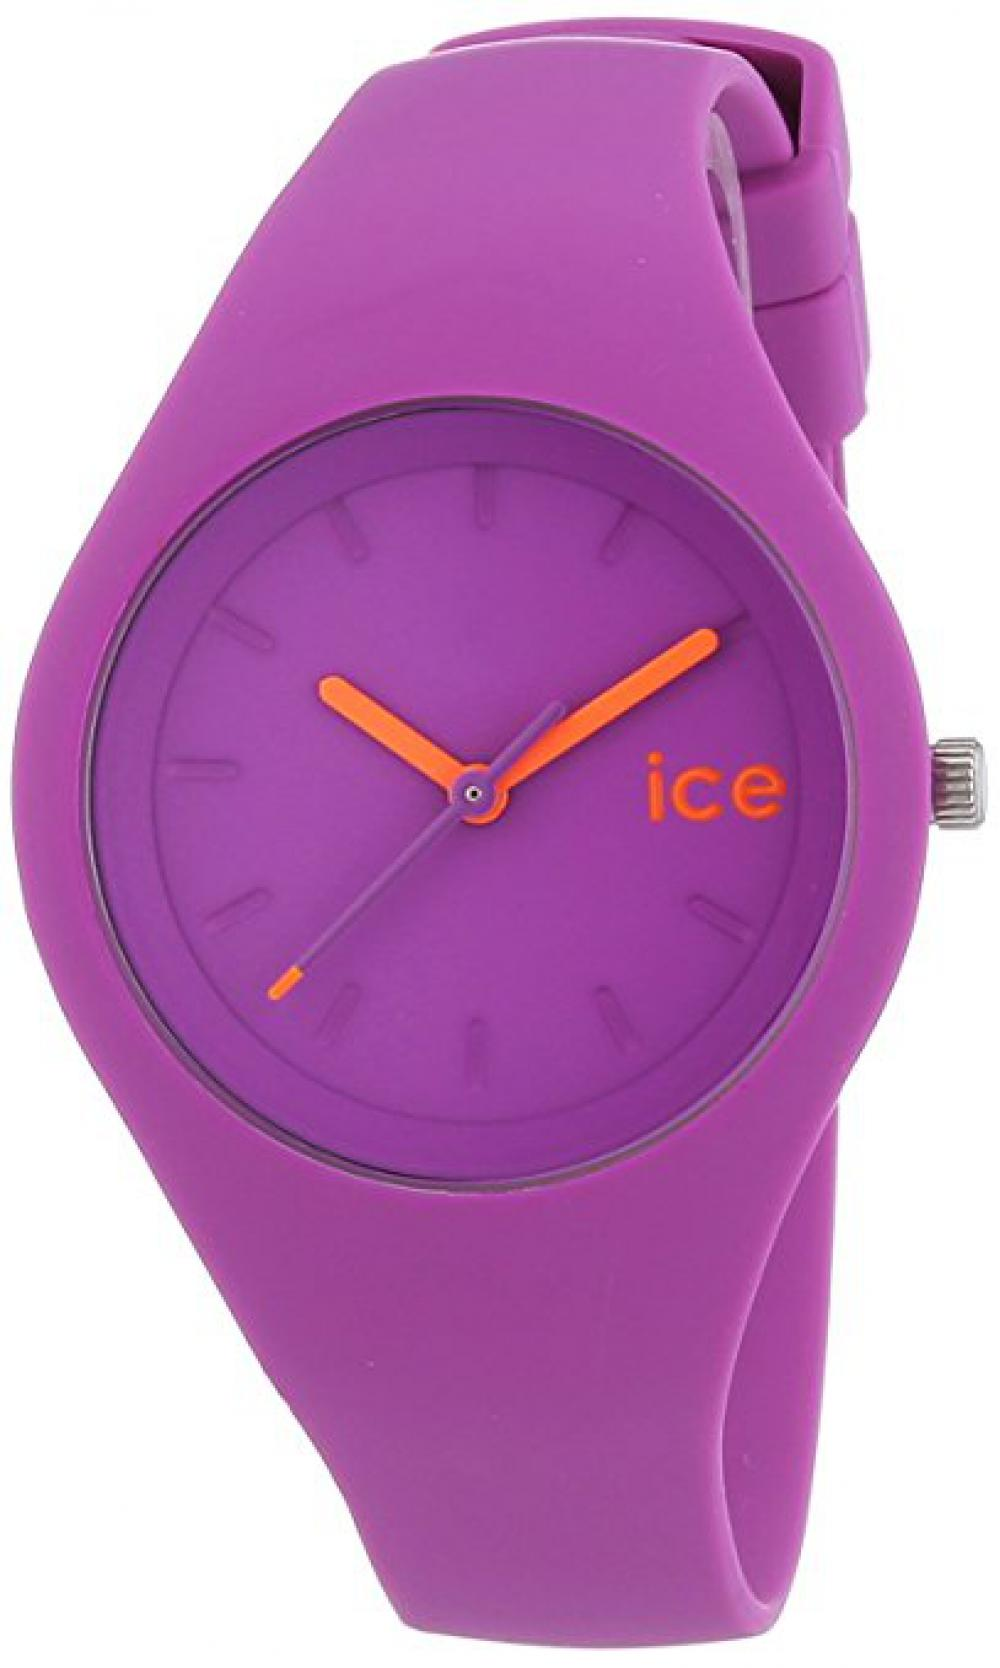 ICE WATCH CHAMALLOW Radiant Orchid Unisex